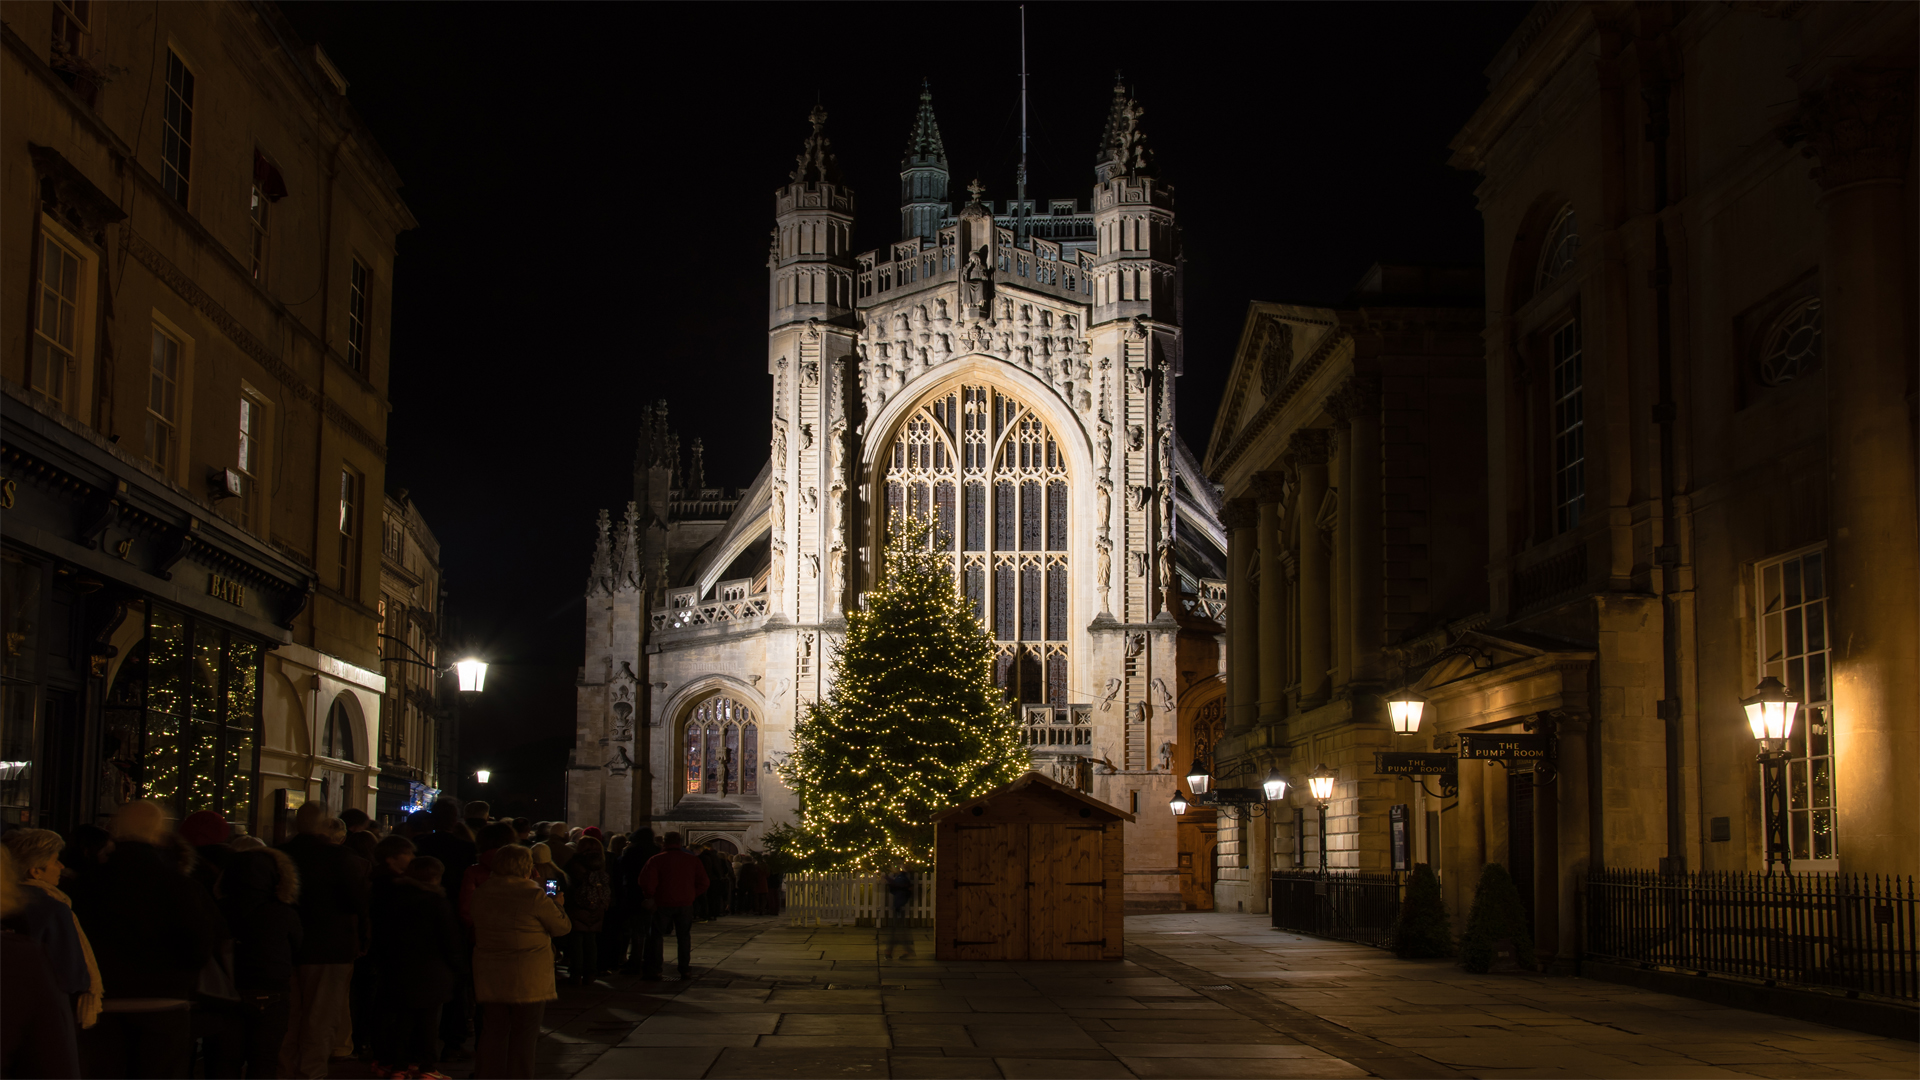 People-queue-for-Christmas-Midnight-Mass-at-Bath-Abbey-1920x1080-wallpaper-wpc5808017